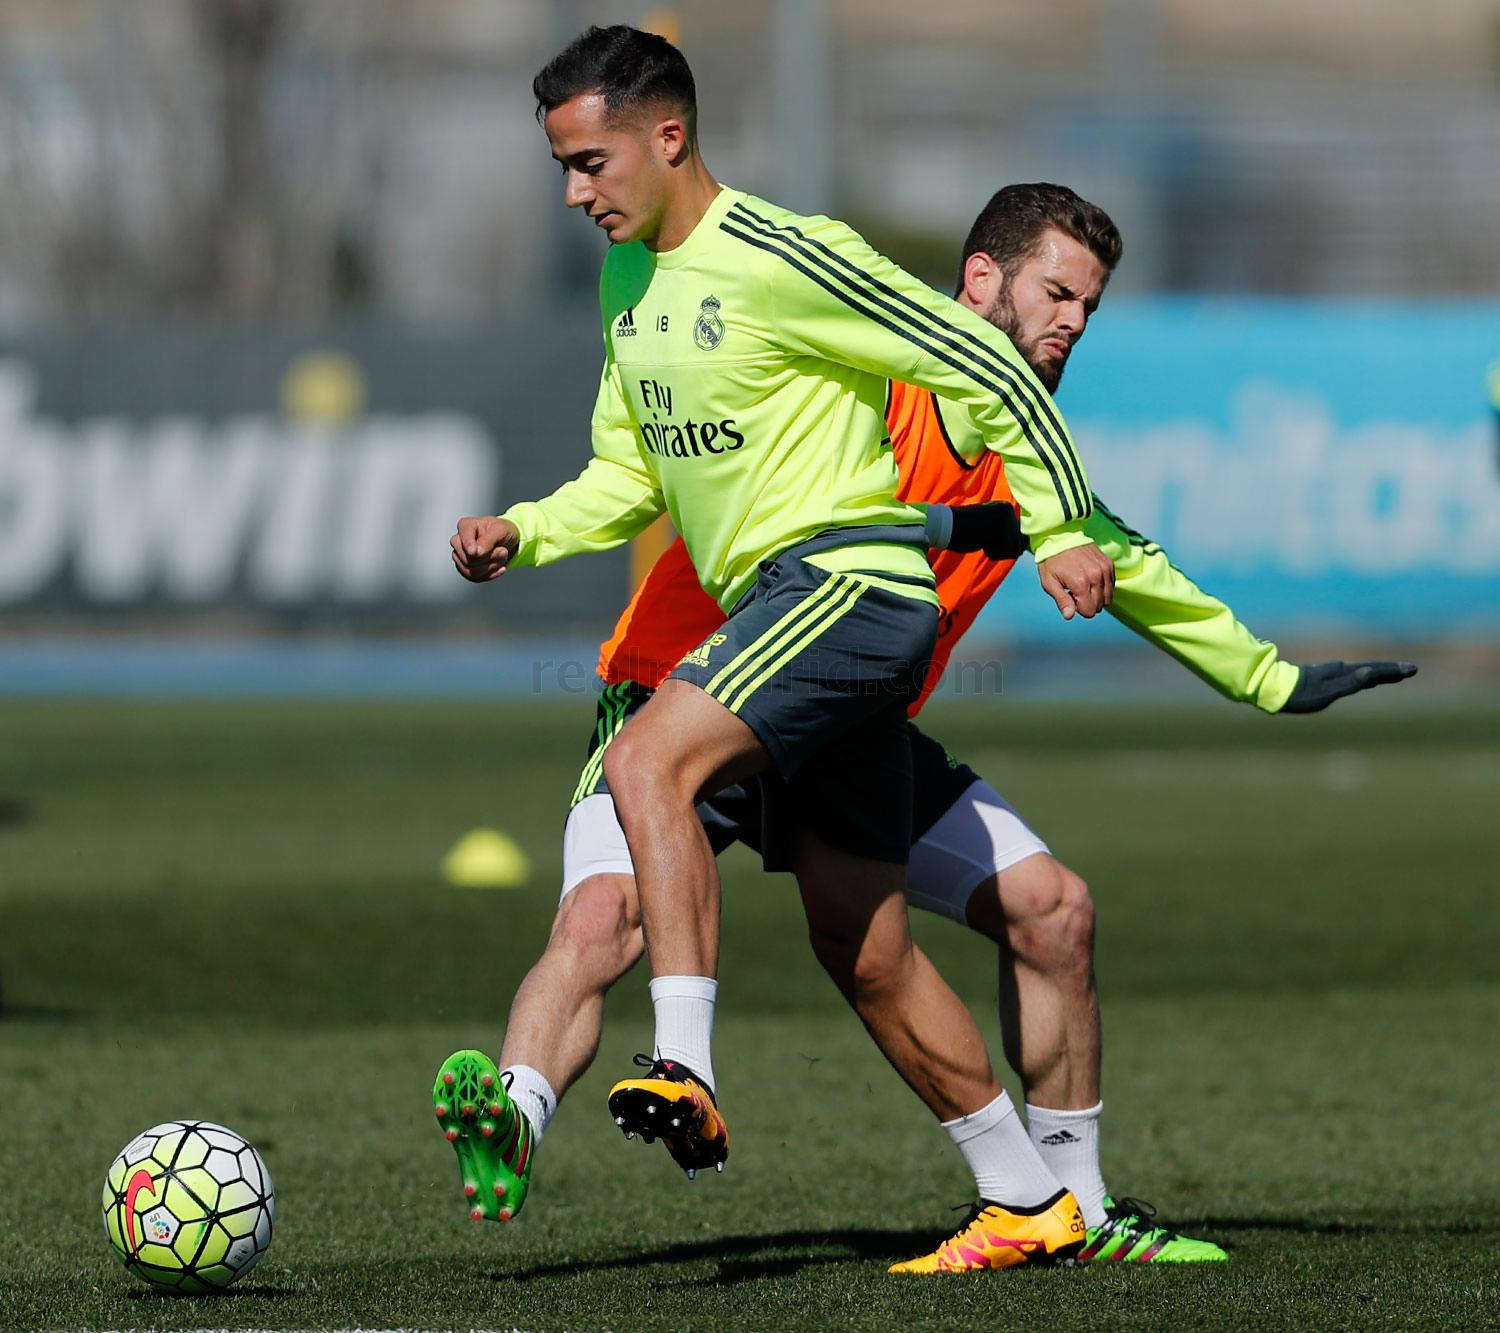 Real Madrid - Entrenamiento del Real Madrid - 29-02-2016